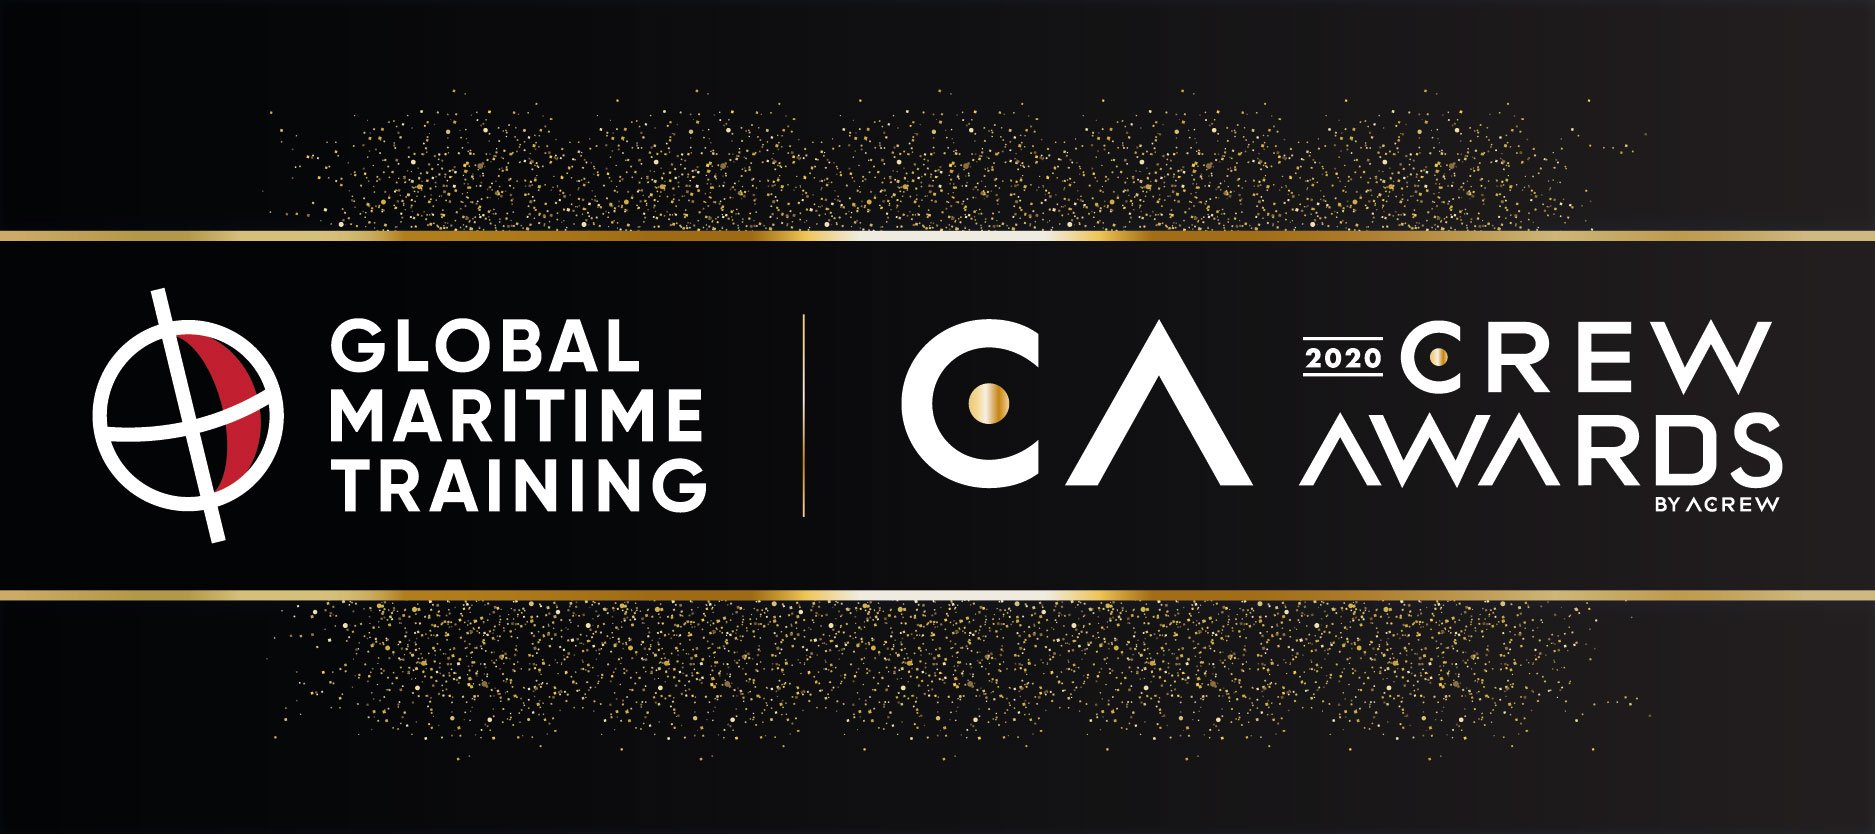 ACREW celebrates the 3rd Crew Awards in a new location with GMT as Title Sponsor